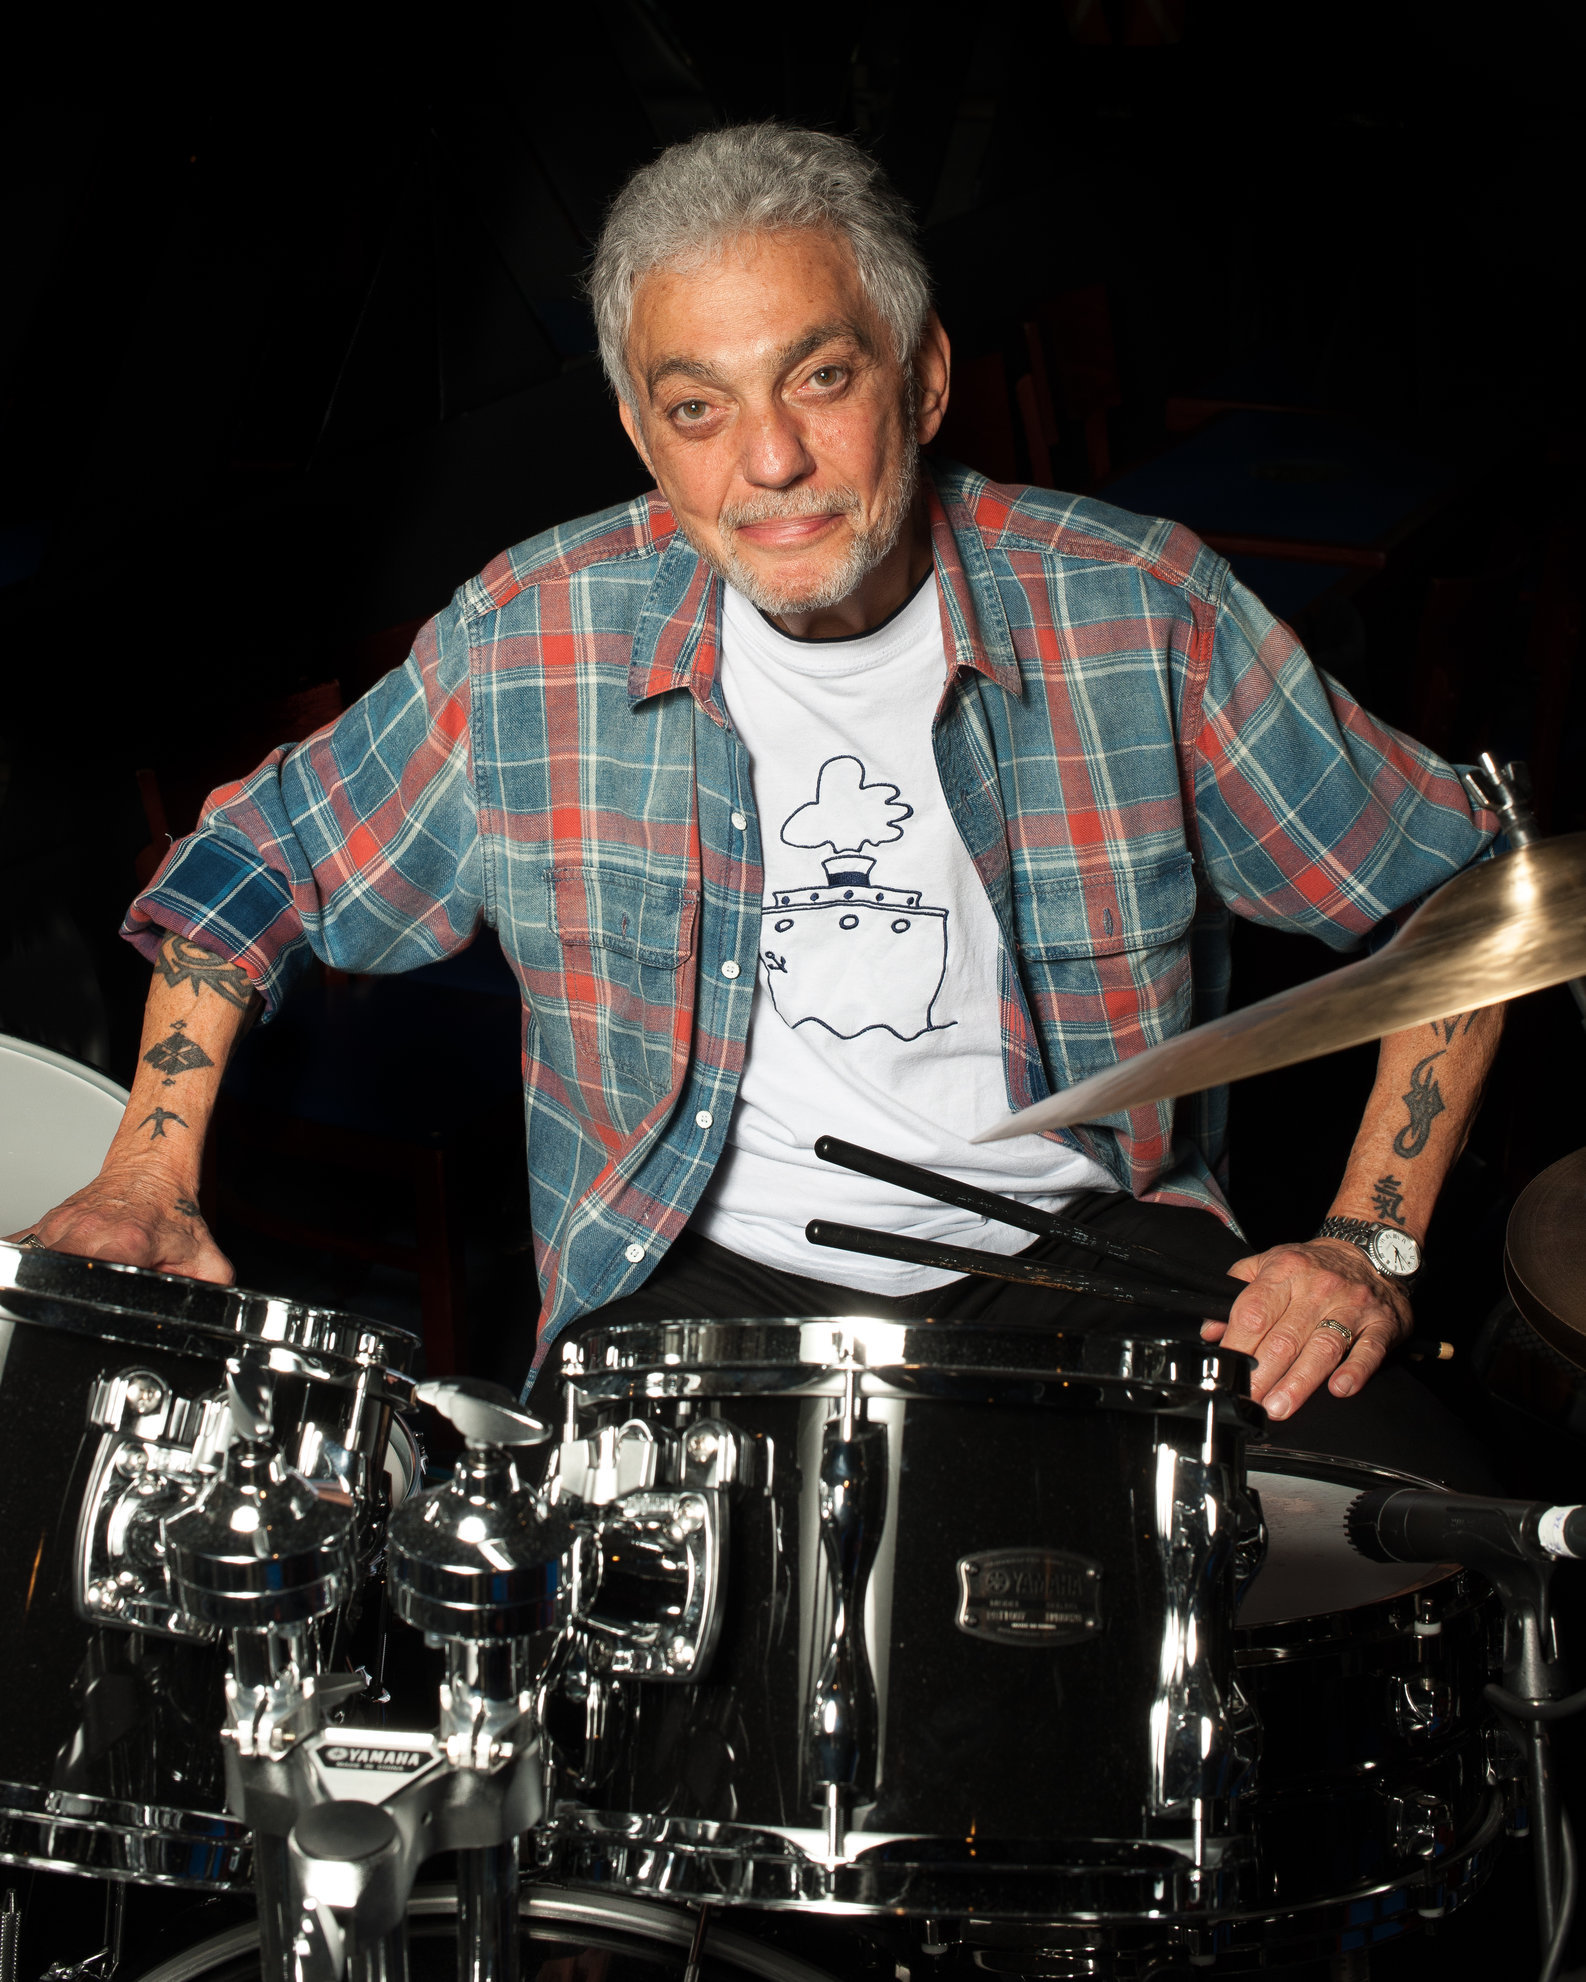 Steve Gadd, Legend